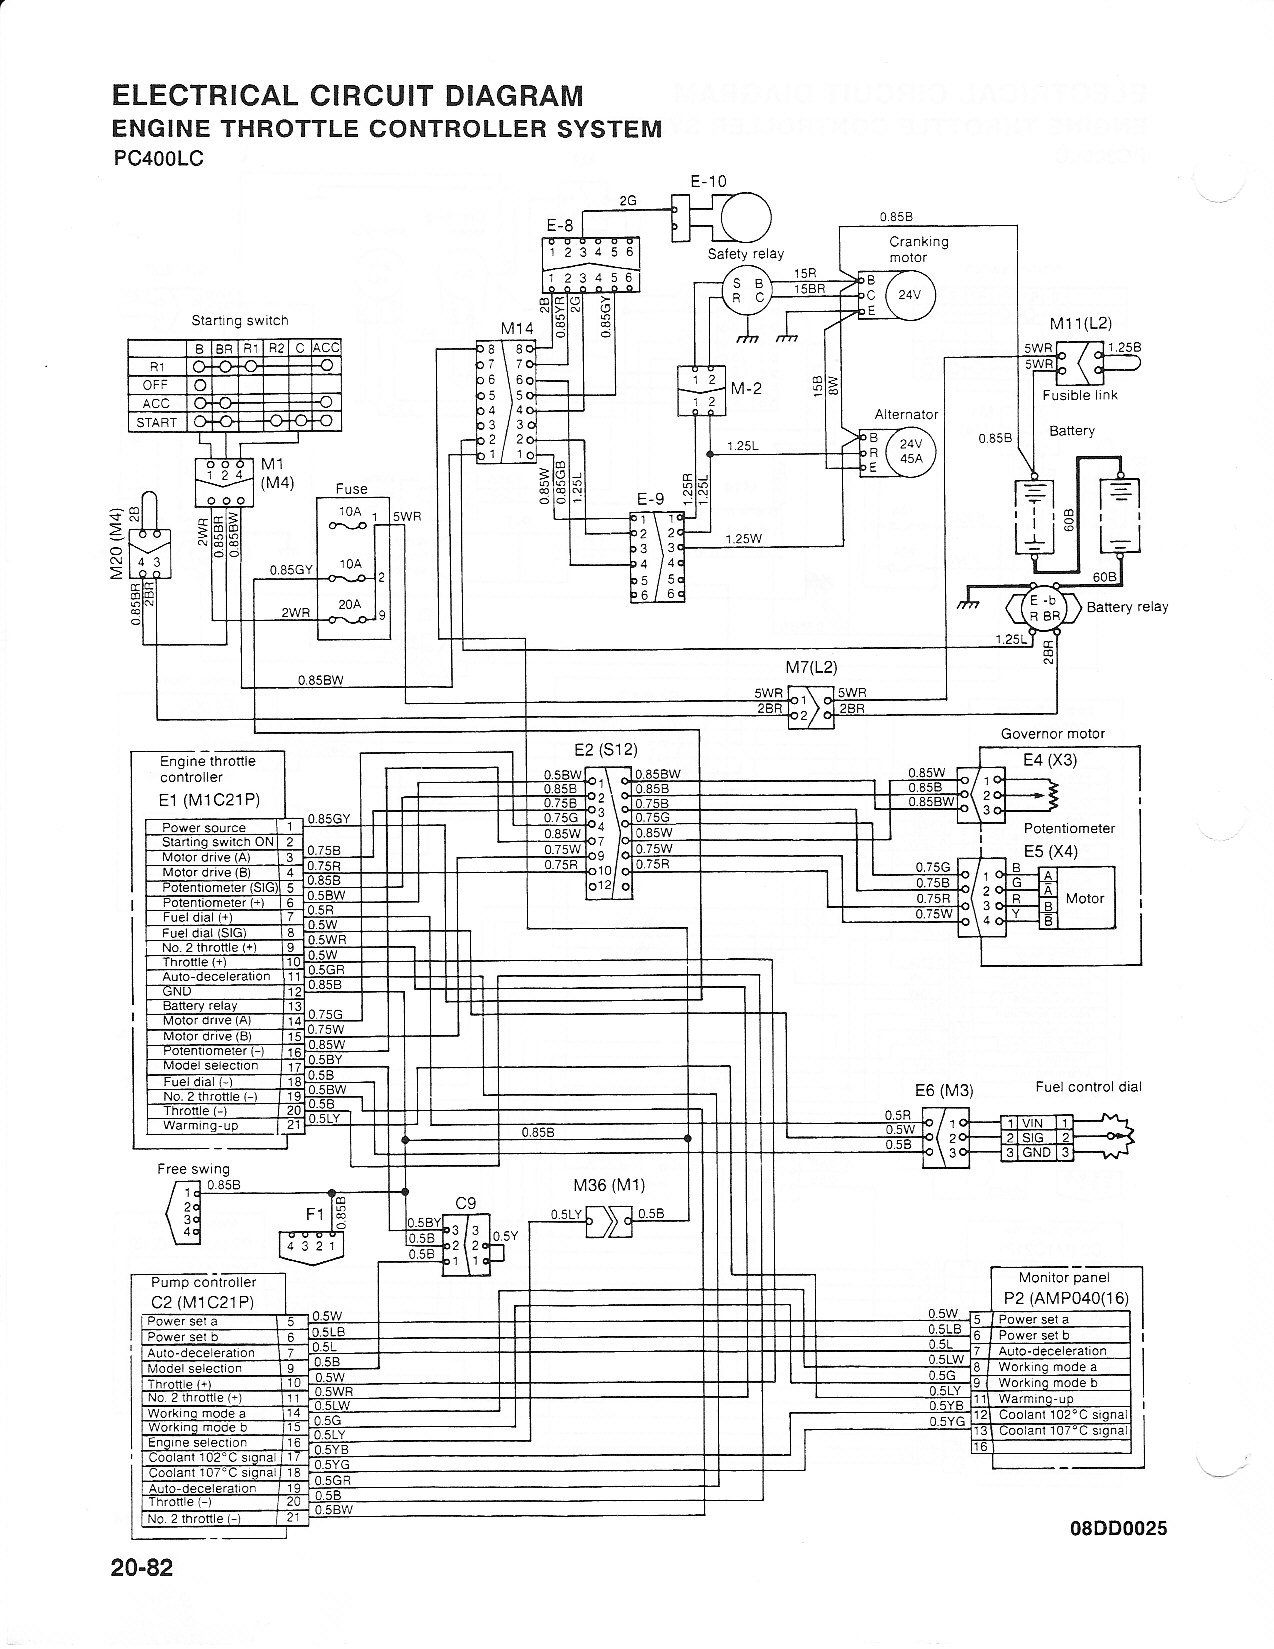 2001 Peterbilt 379 Wiring Diagram. peterbilt 379 ignition